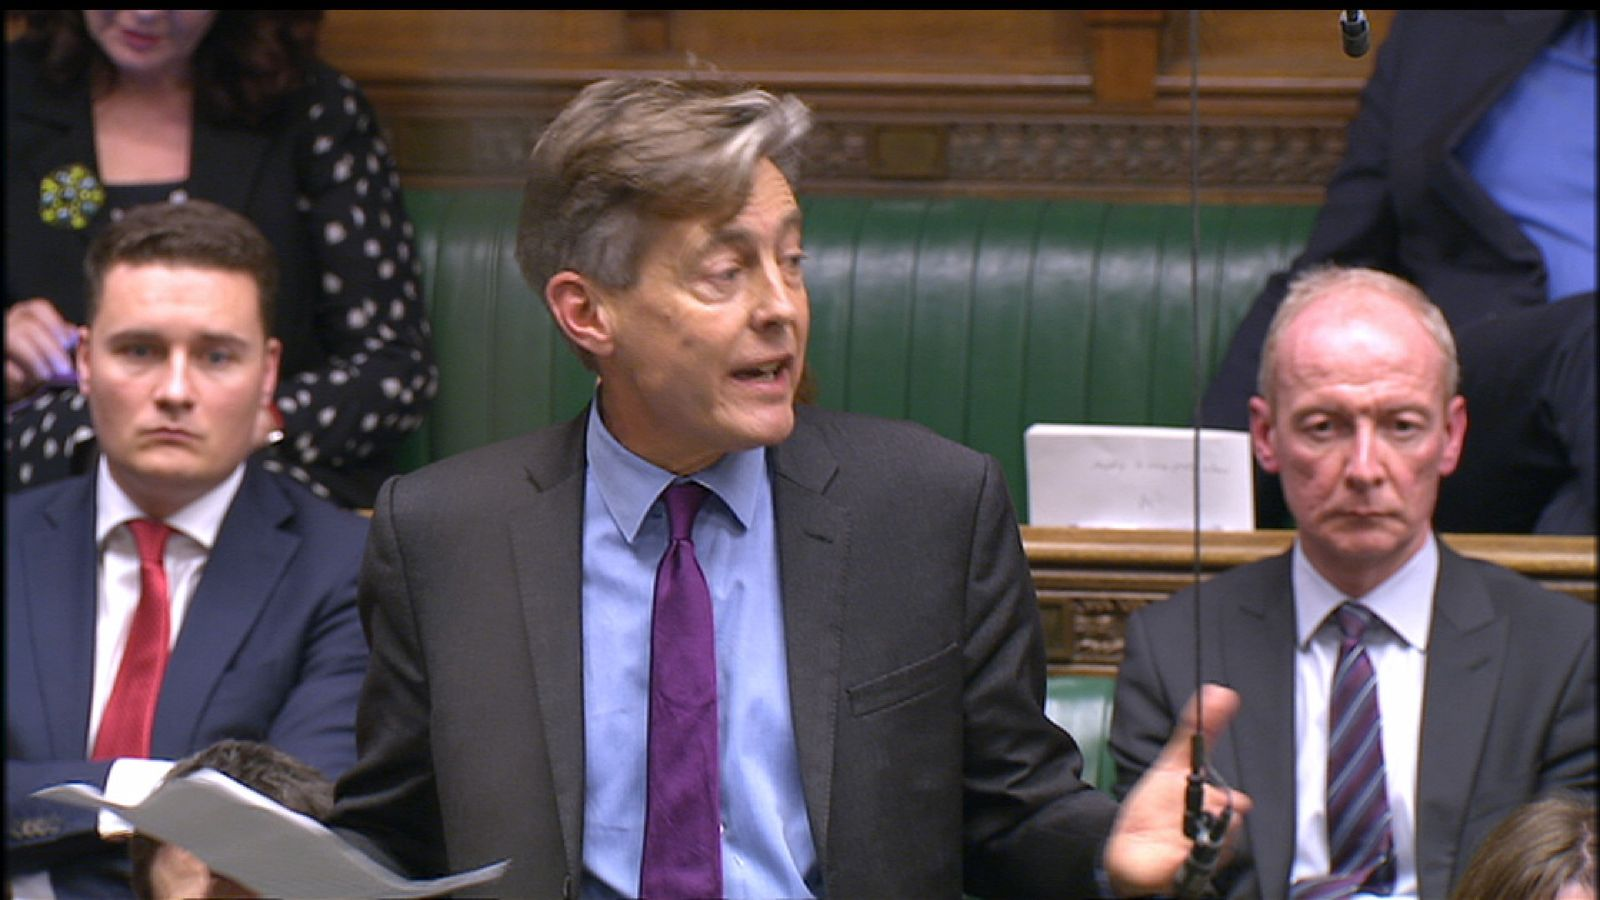 Labour MP Ben Bradshaw accuses Russia of interference in international election and referendum processes